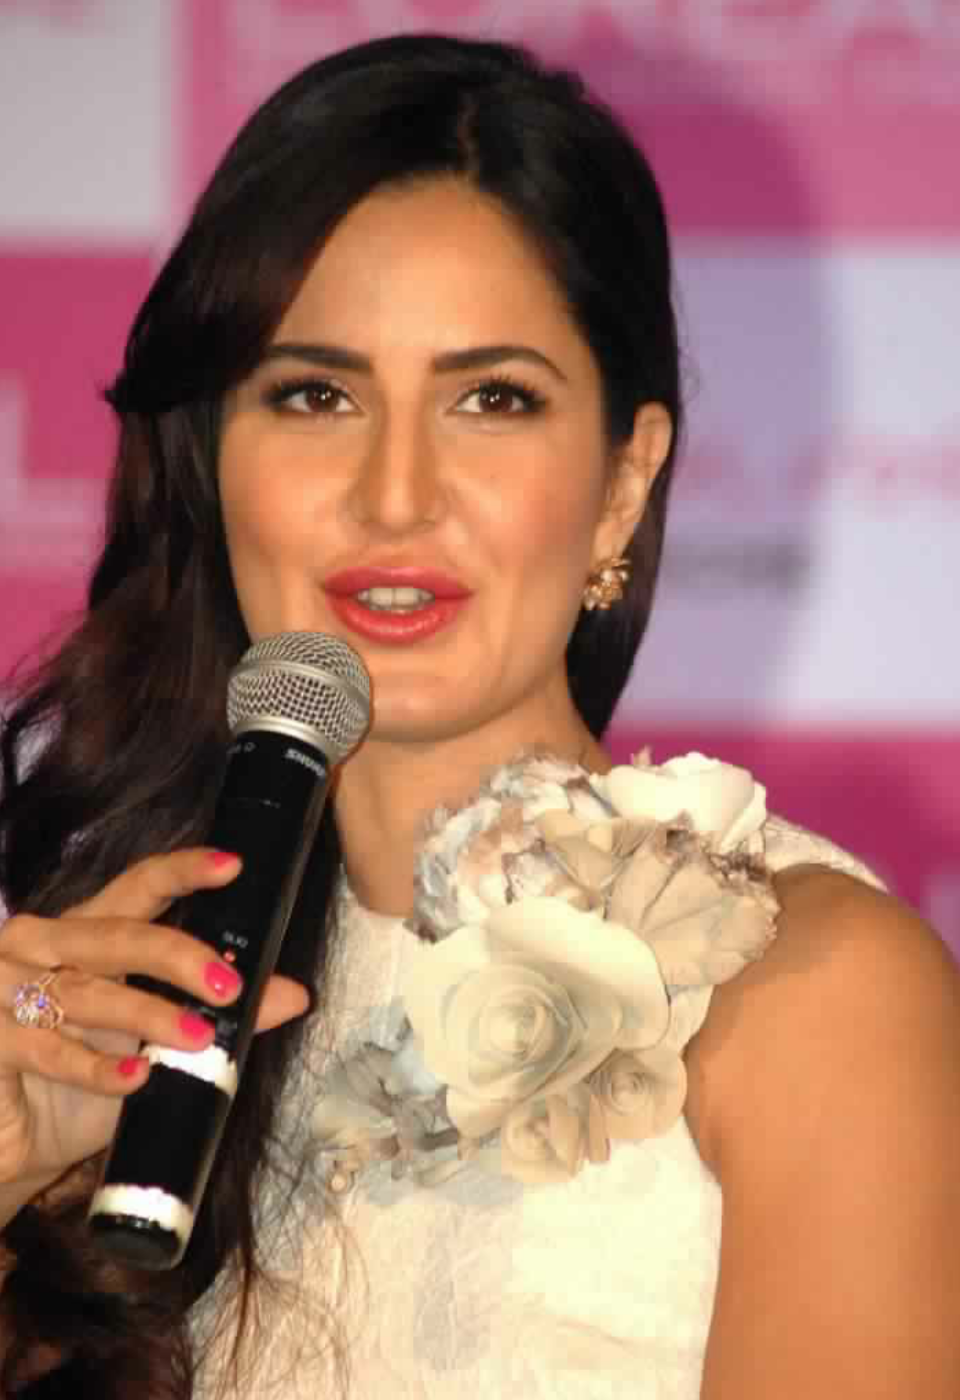 Bollywood actor and brand Ambassdor of LOreal Paris Katrina Kaif speaking to the media persons during the launch of La Vie En Rose lipsticks by L'Oreal Paris in Mumbai on thursday